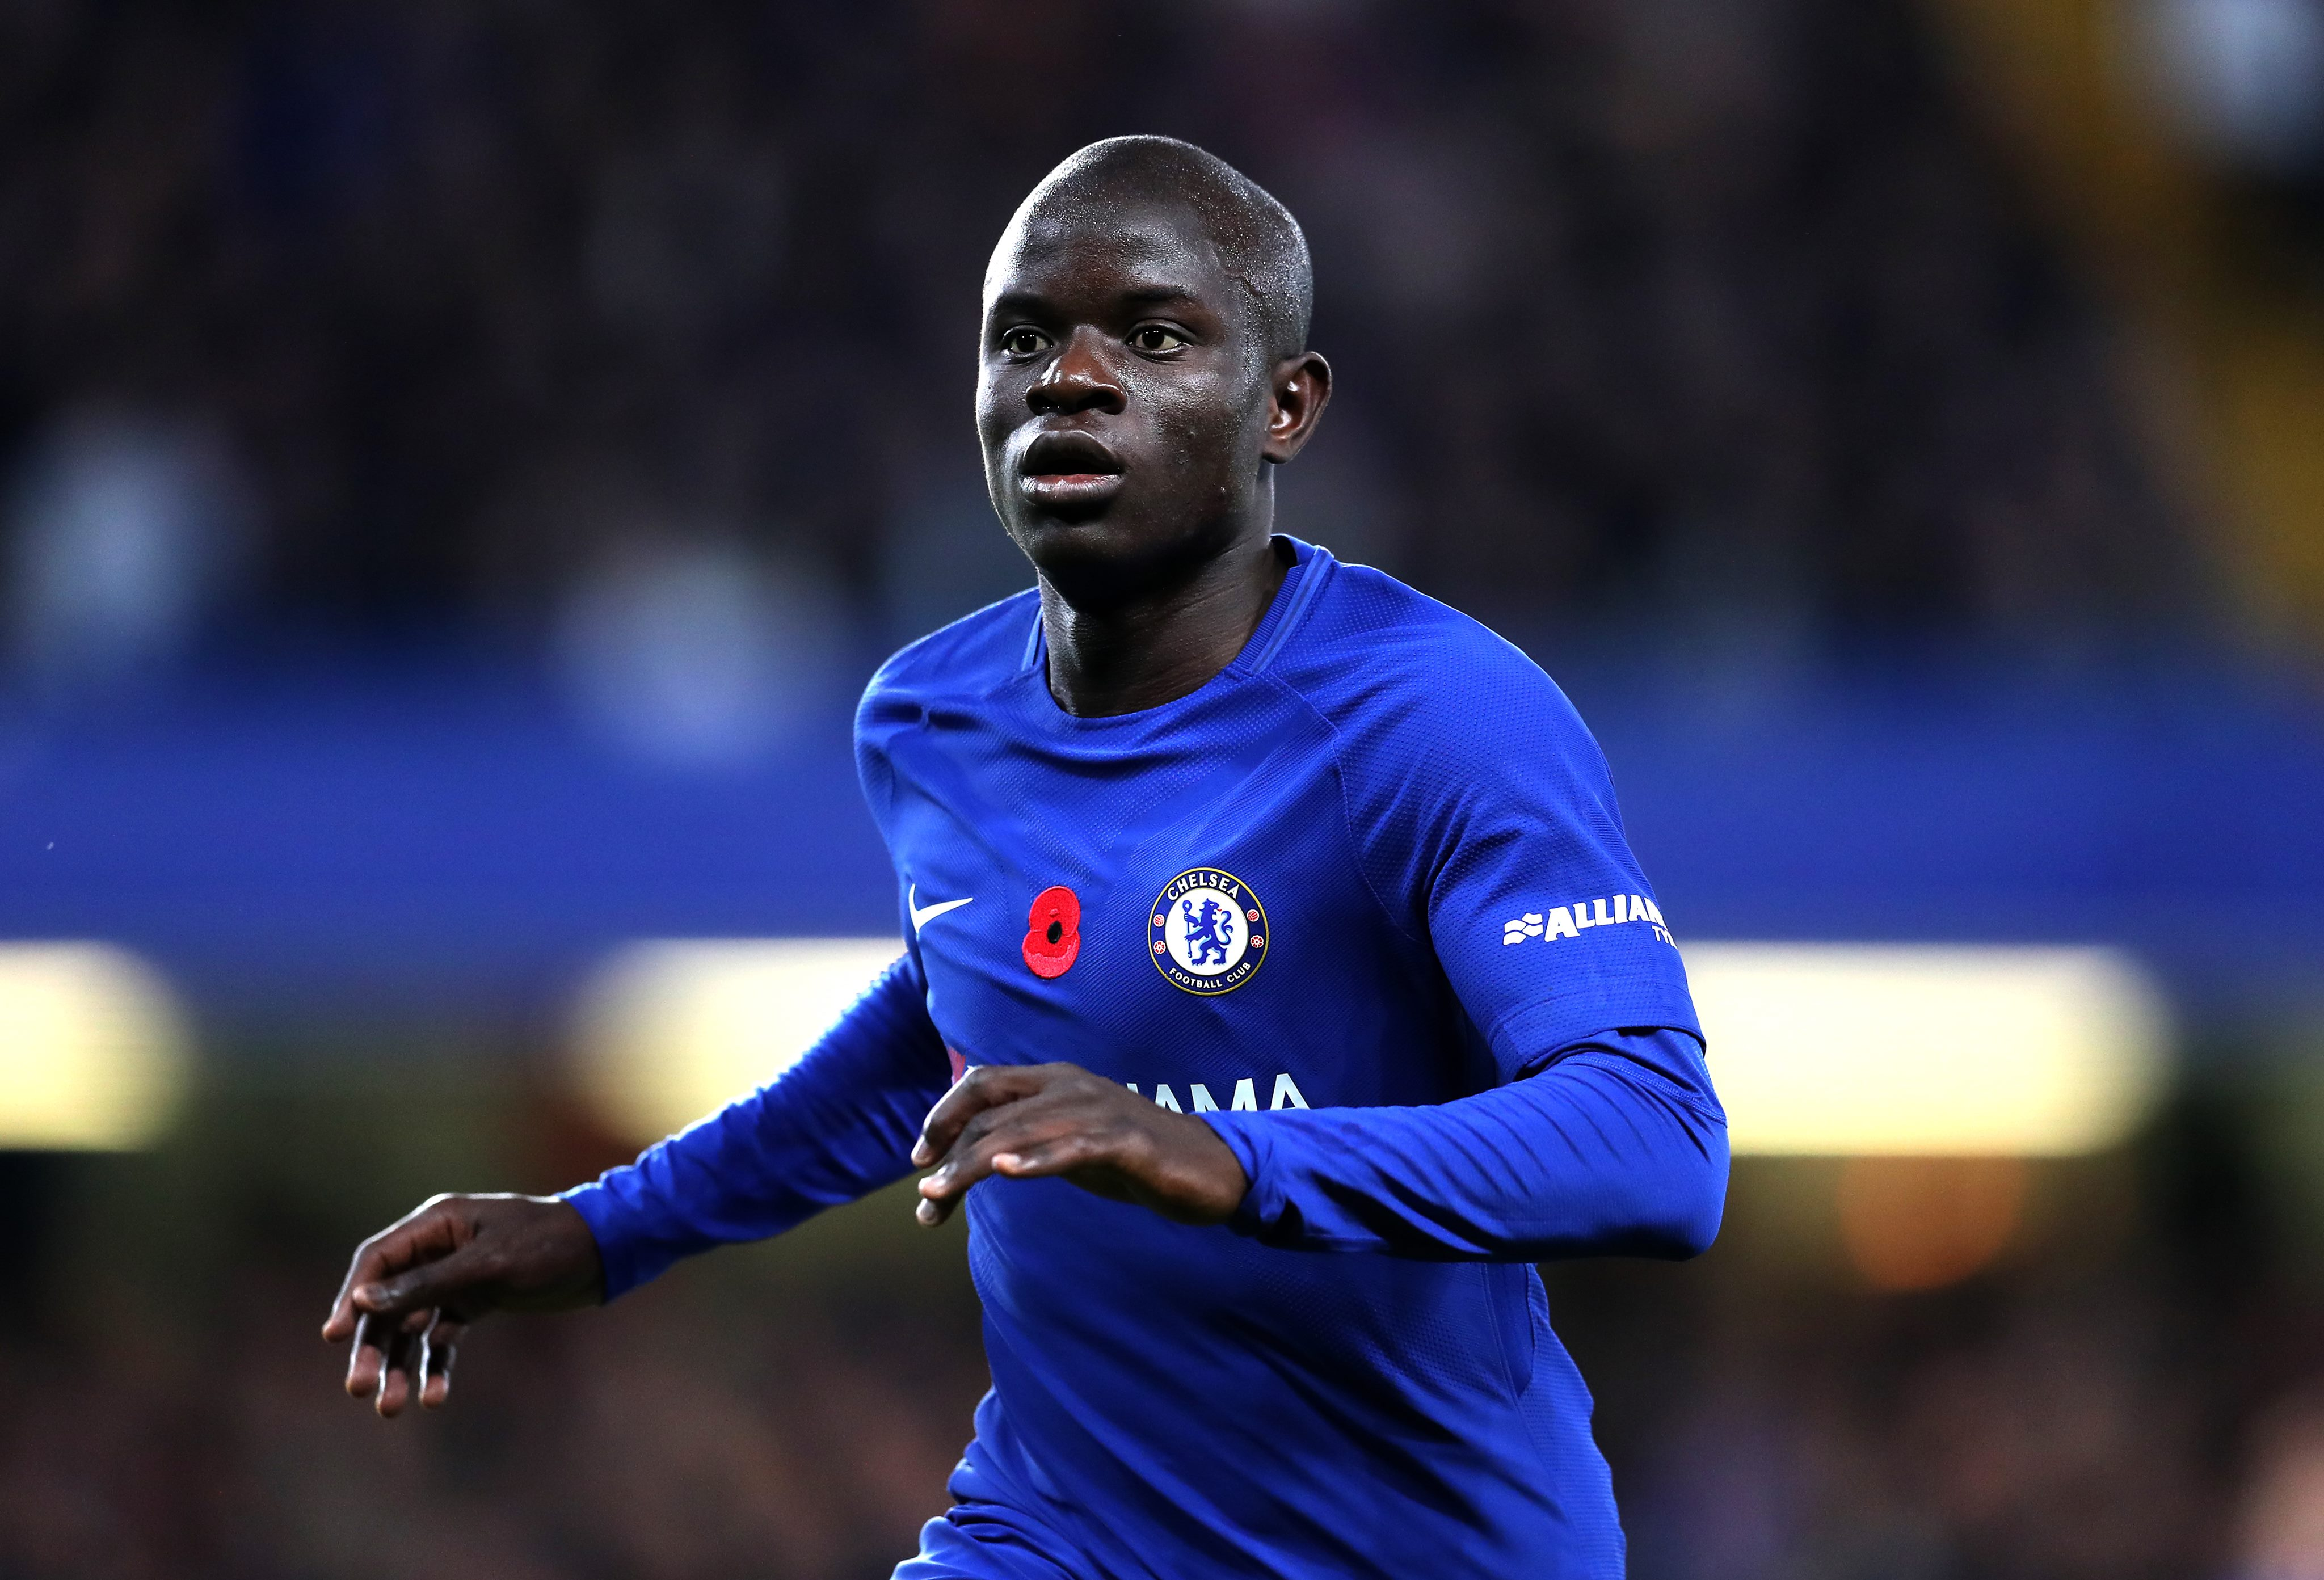 Poor man's Makelele. Image: PA Images